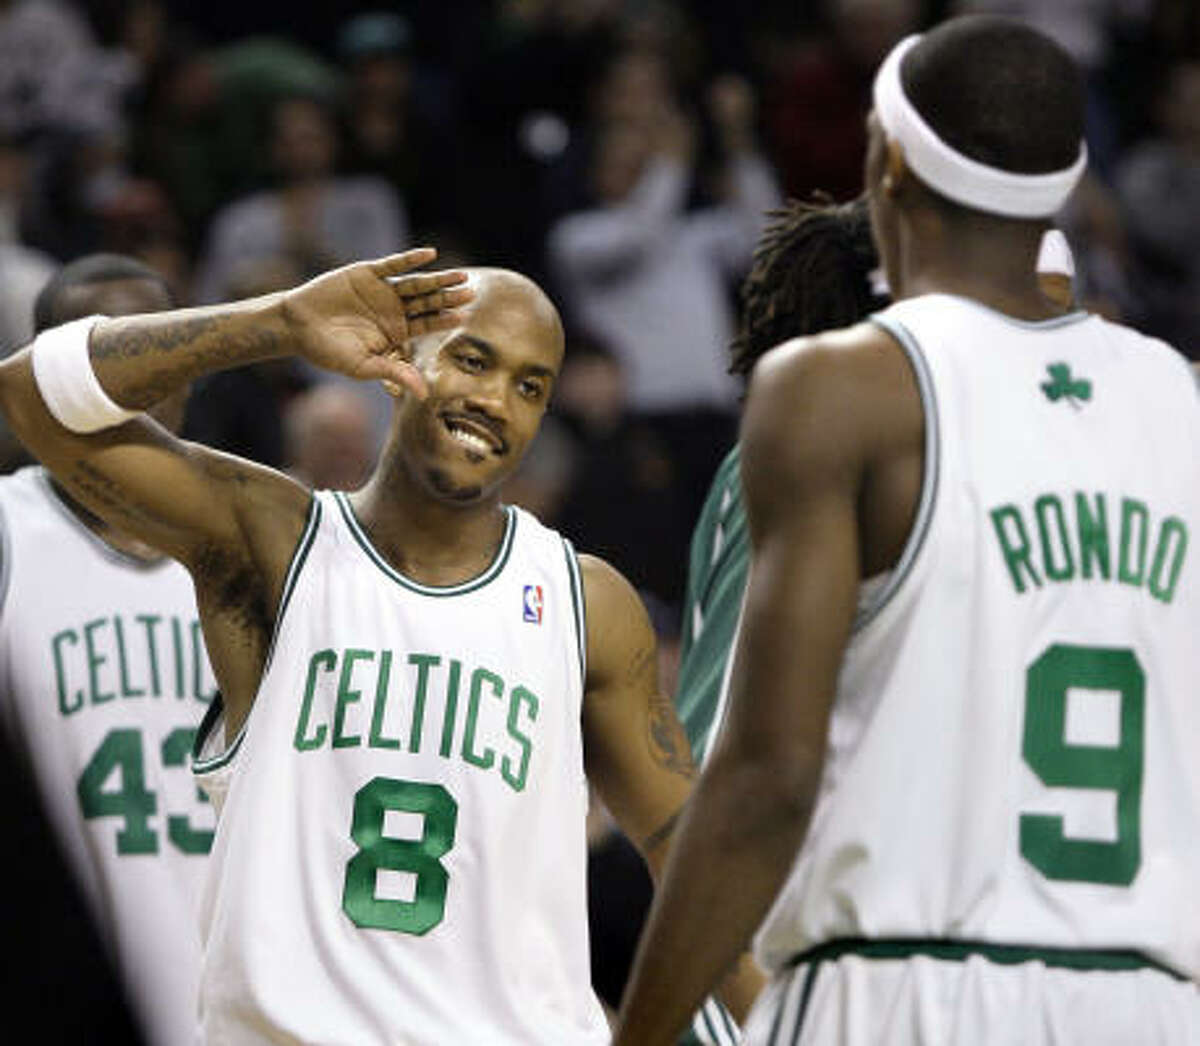 Boston Celtics: Why the hate? No matter what generation you're from, you hate a different group of champions.